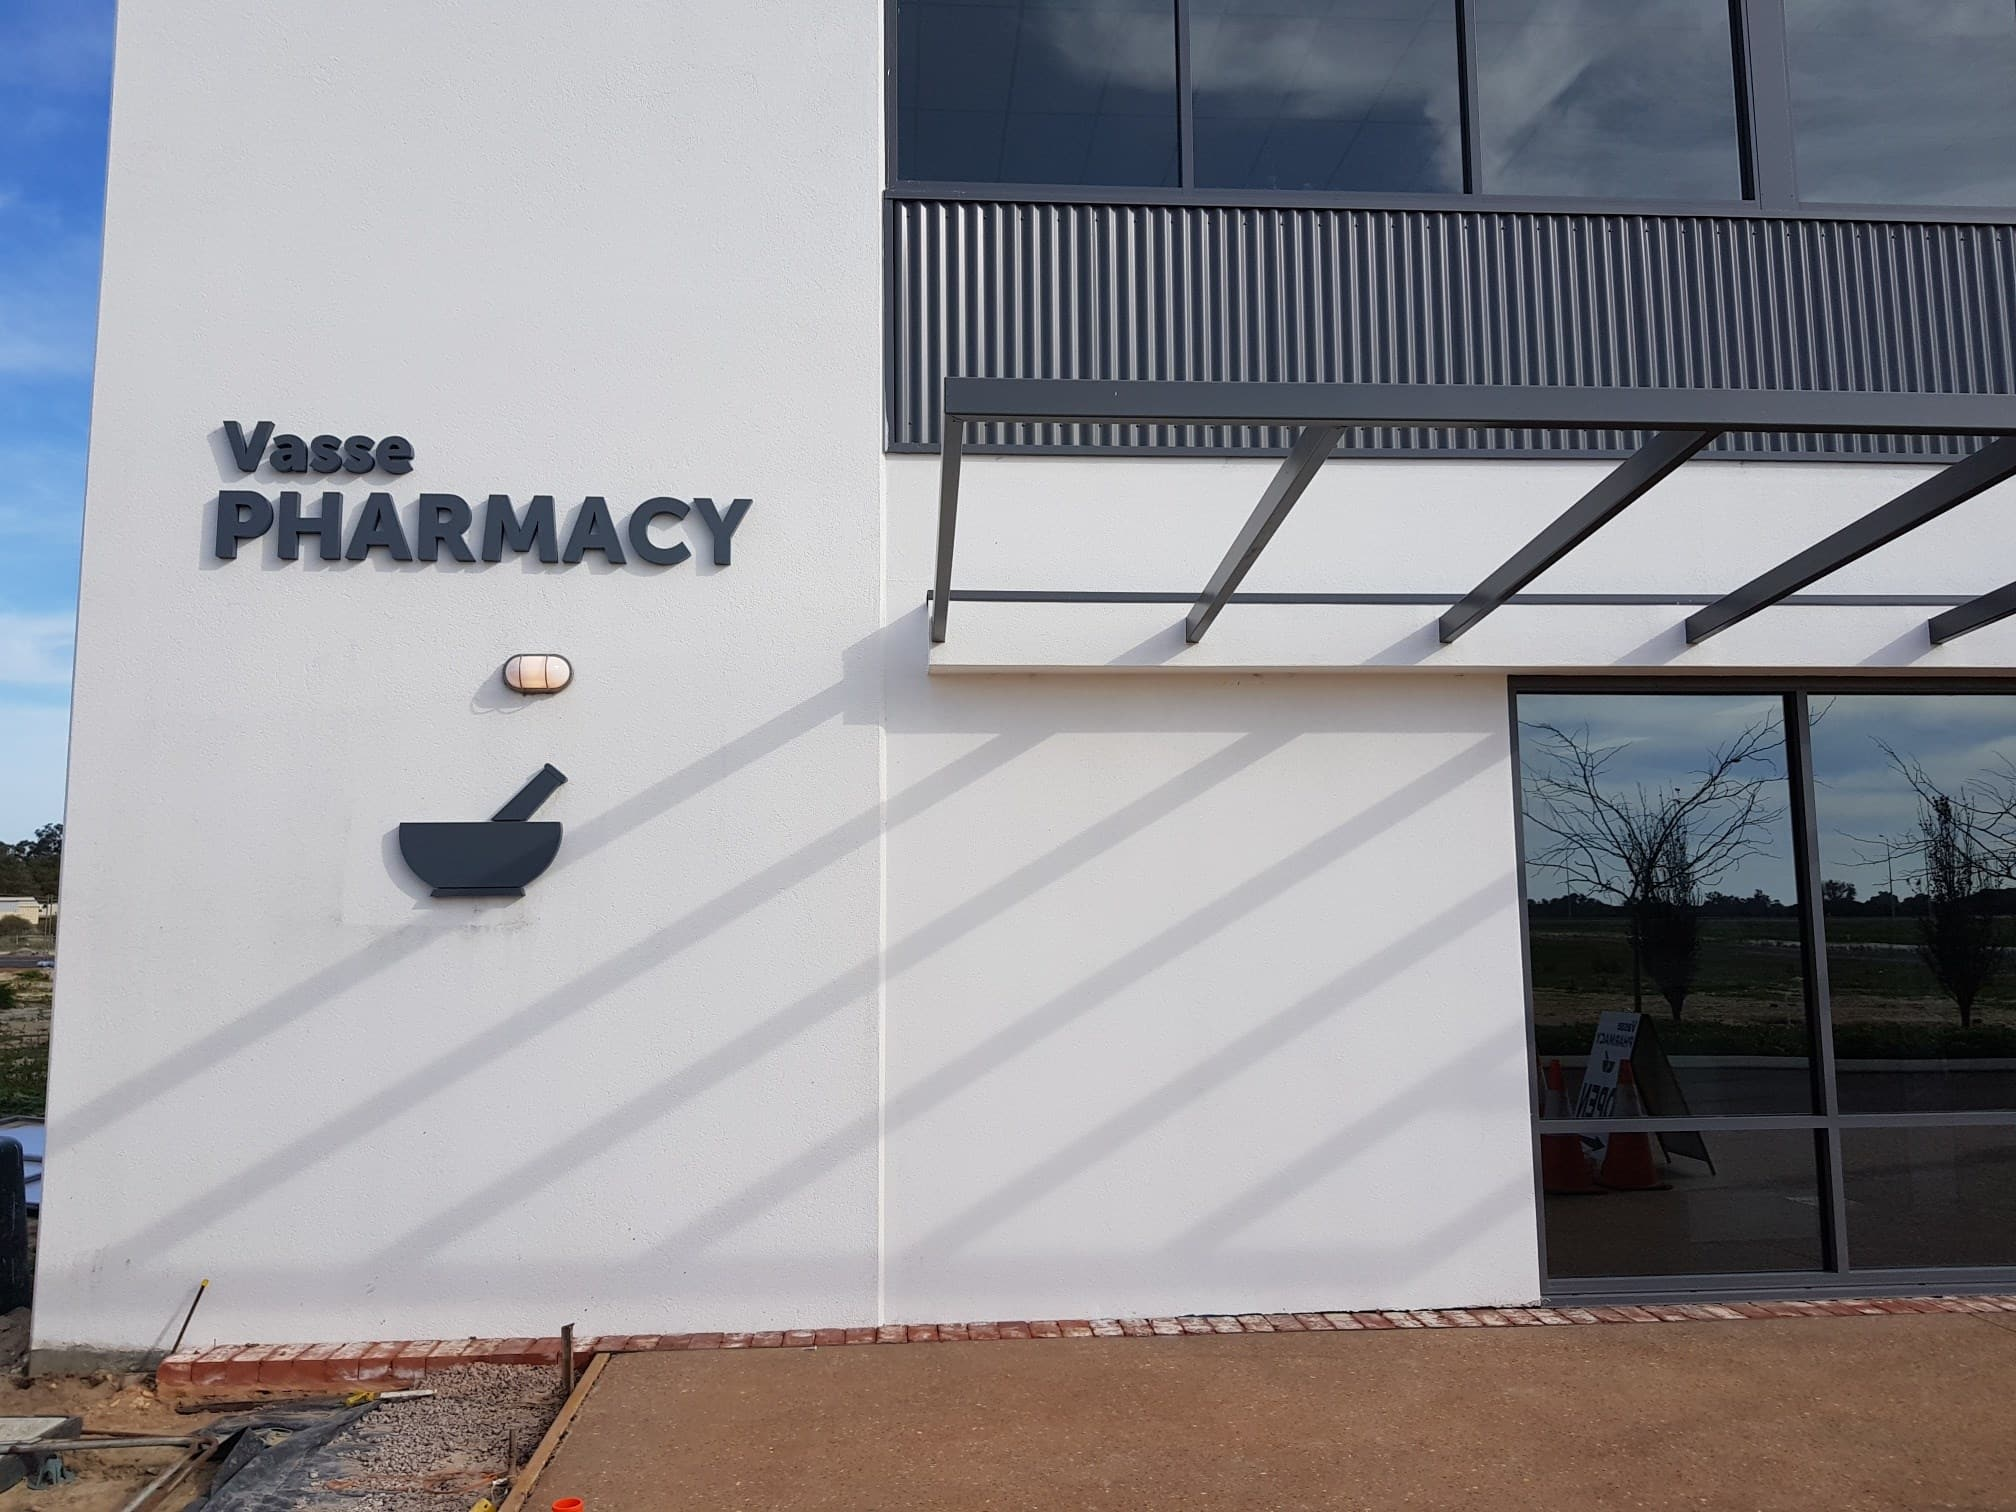 Vasse Pharmacy